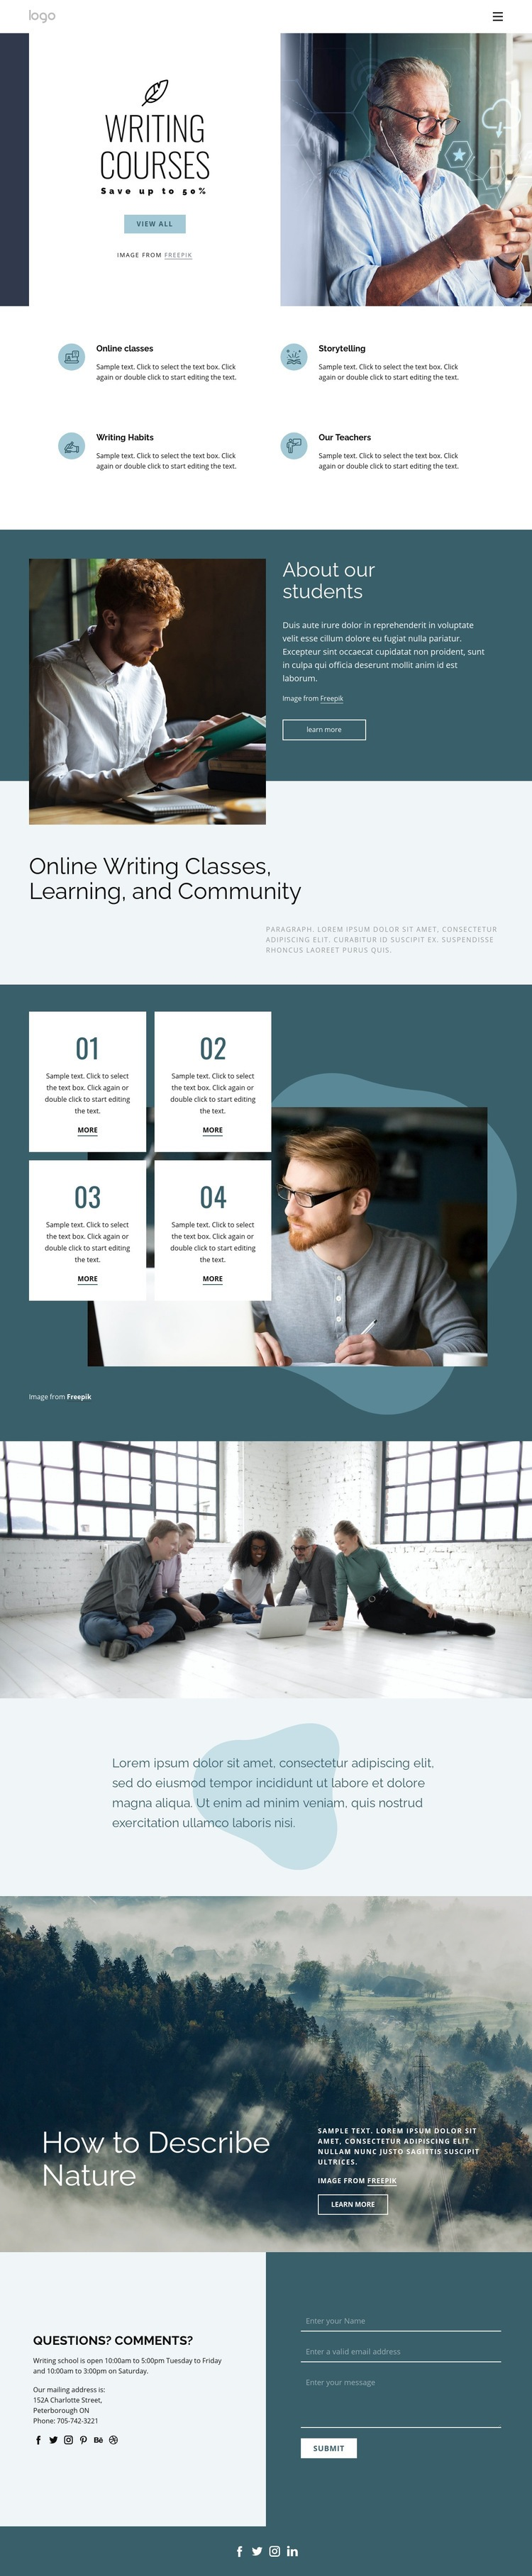 Creative writing courses Web Page Designer